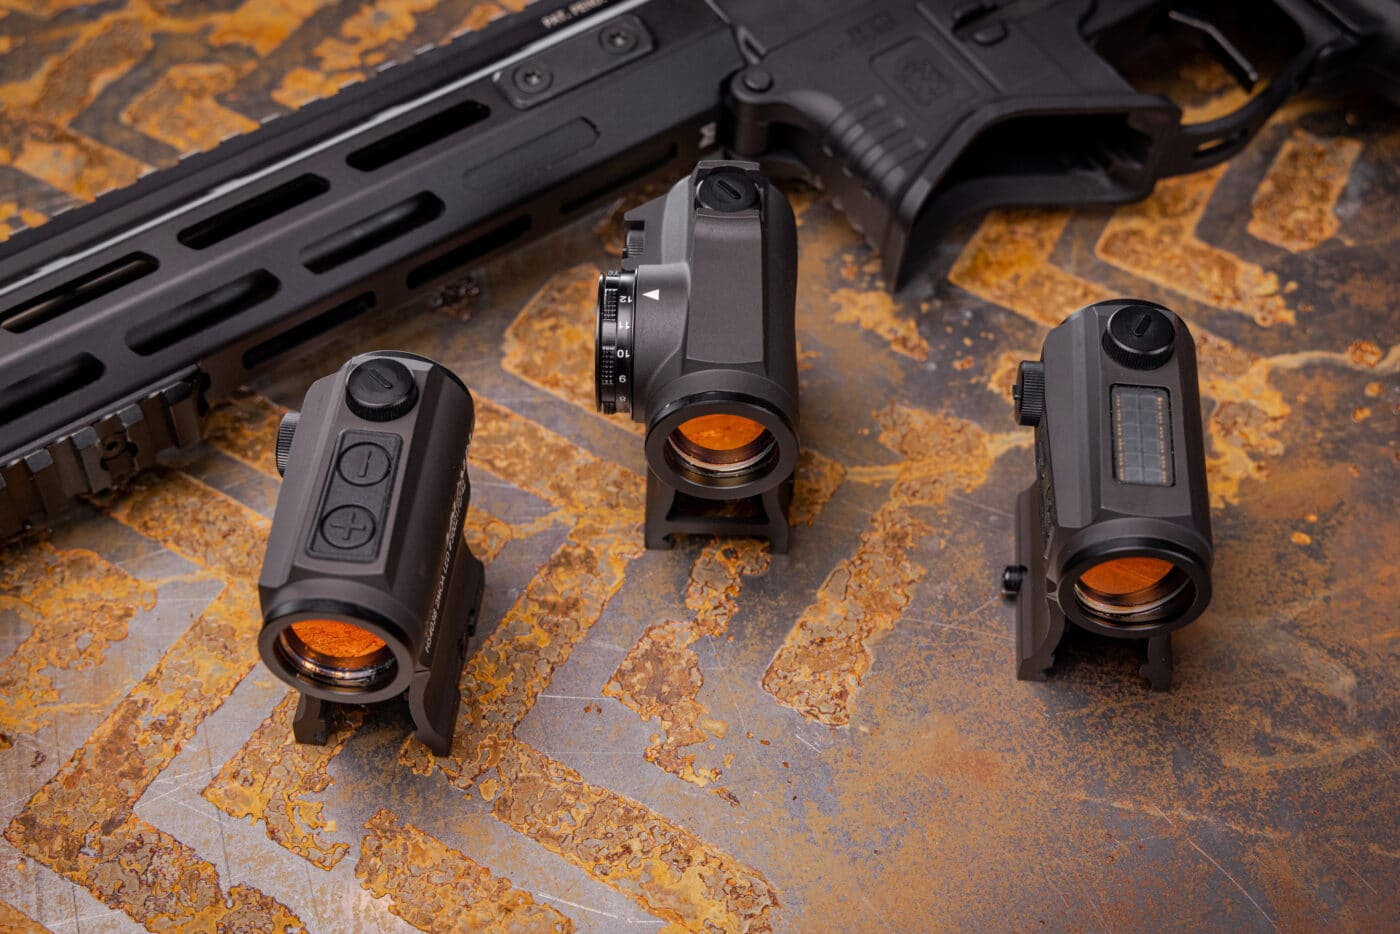 Different Holosun reflex sights with varying reticle colors